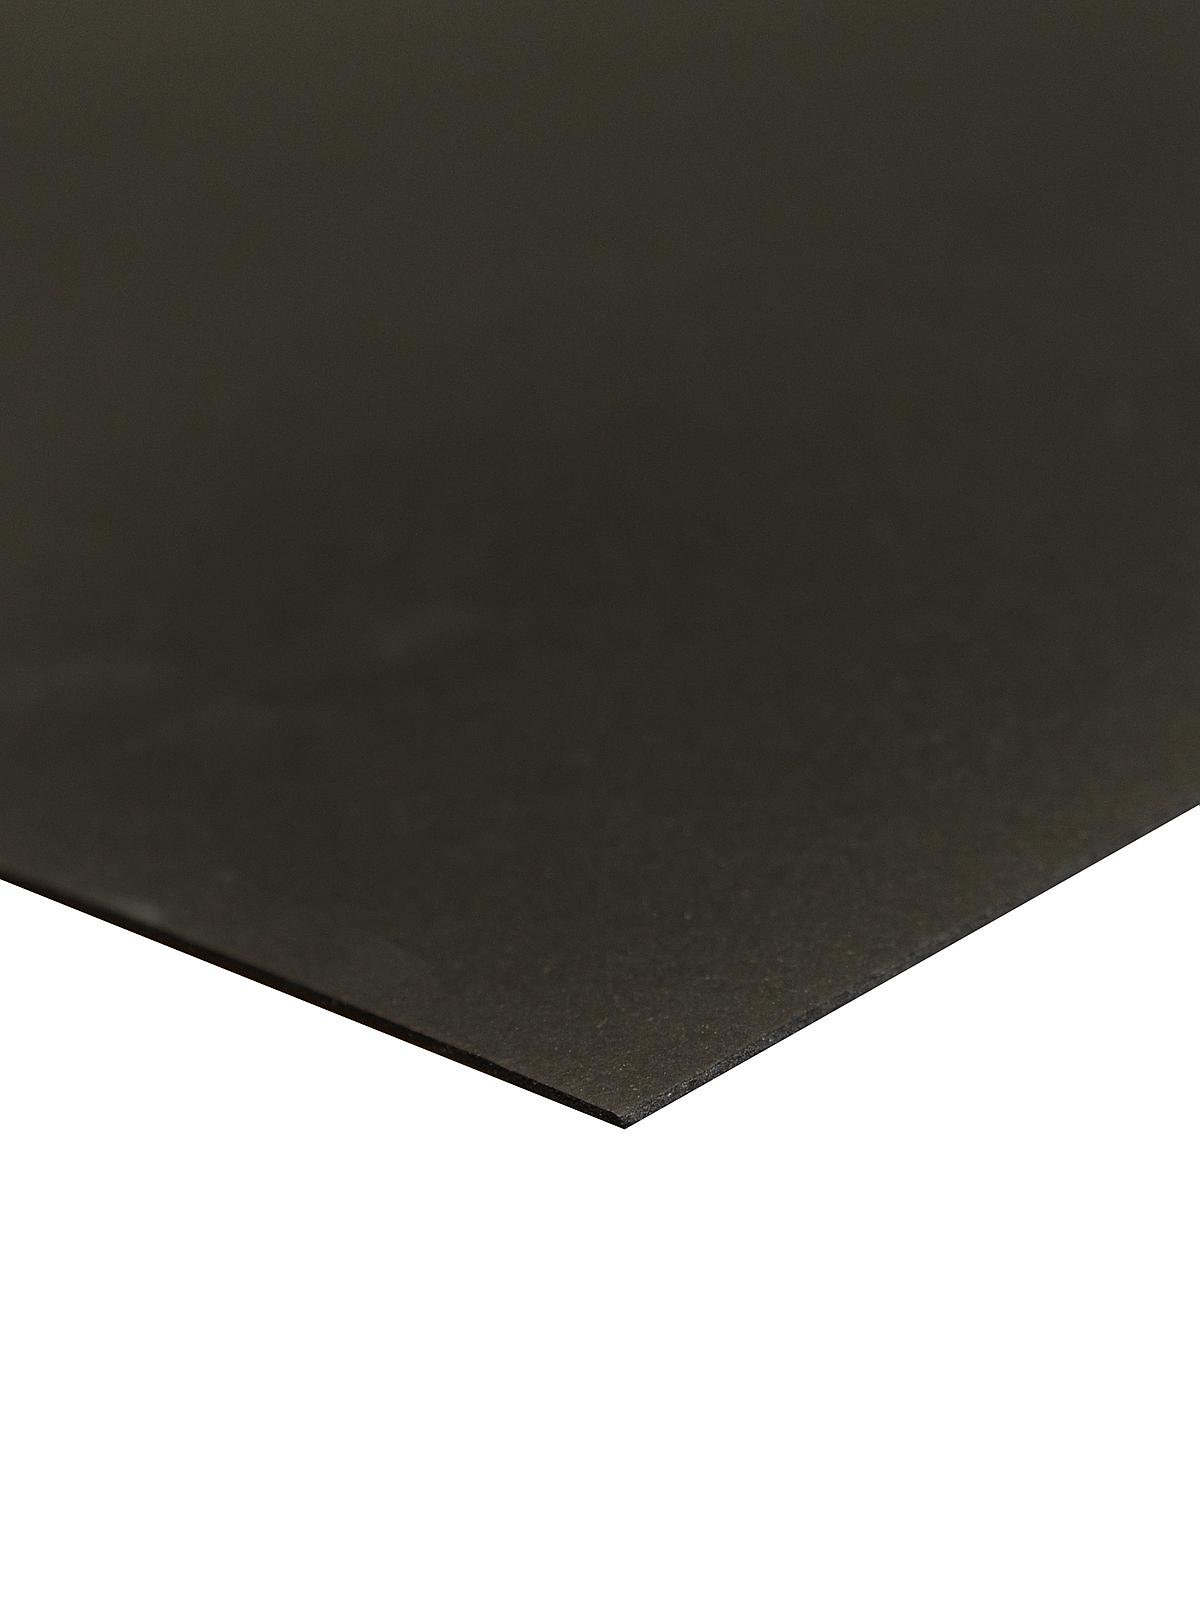 Crescent #6008 Ultra Black Smooth Board 15''x20'' (15 Sheets) by Ultra Black Smooth Display Boards